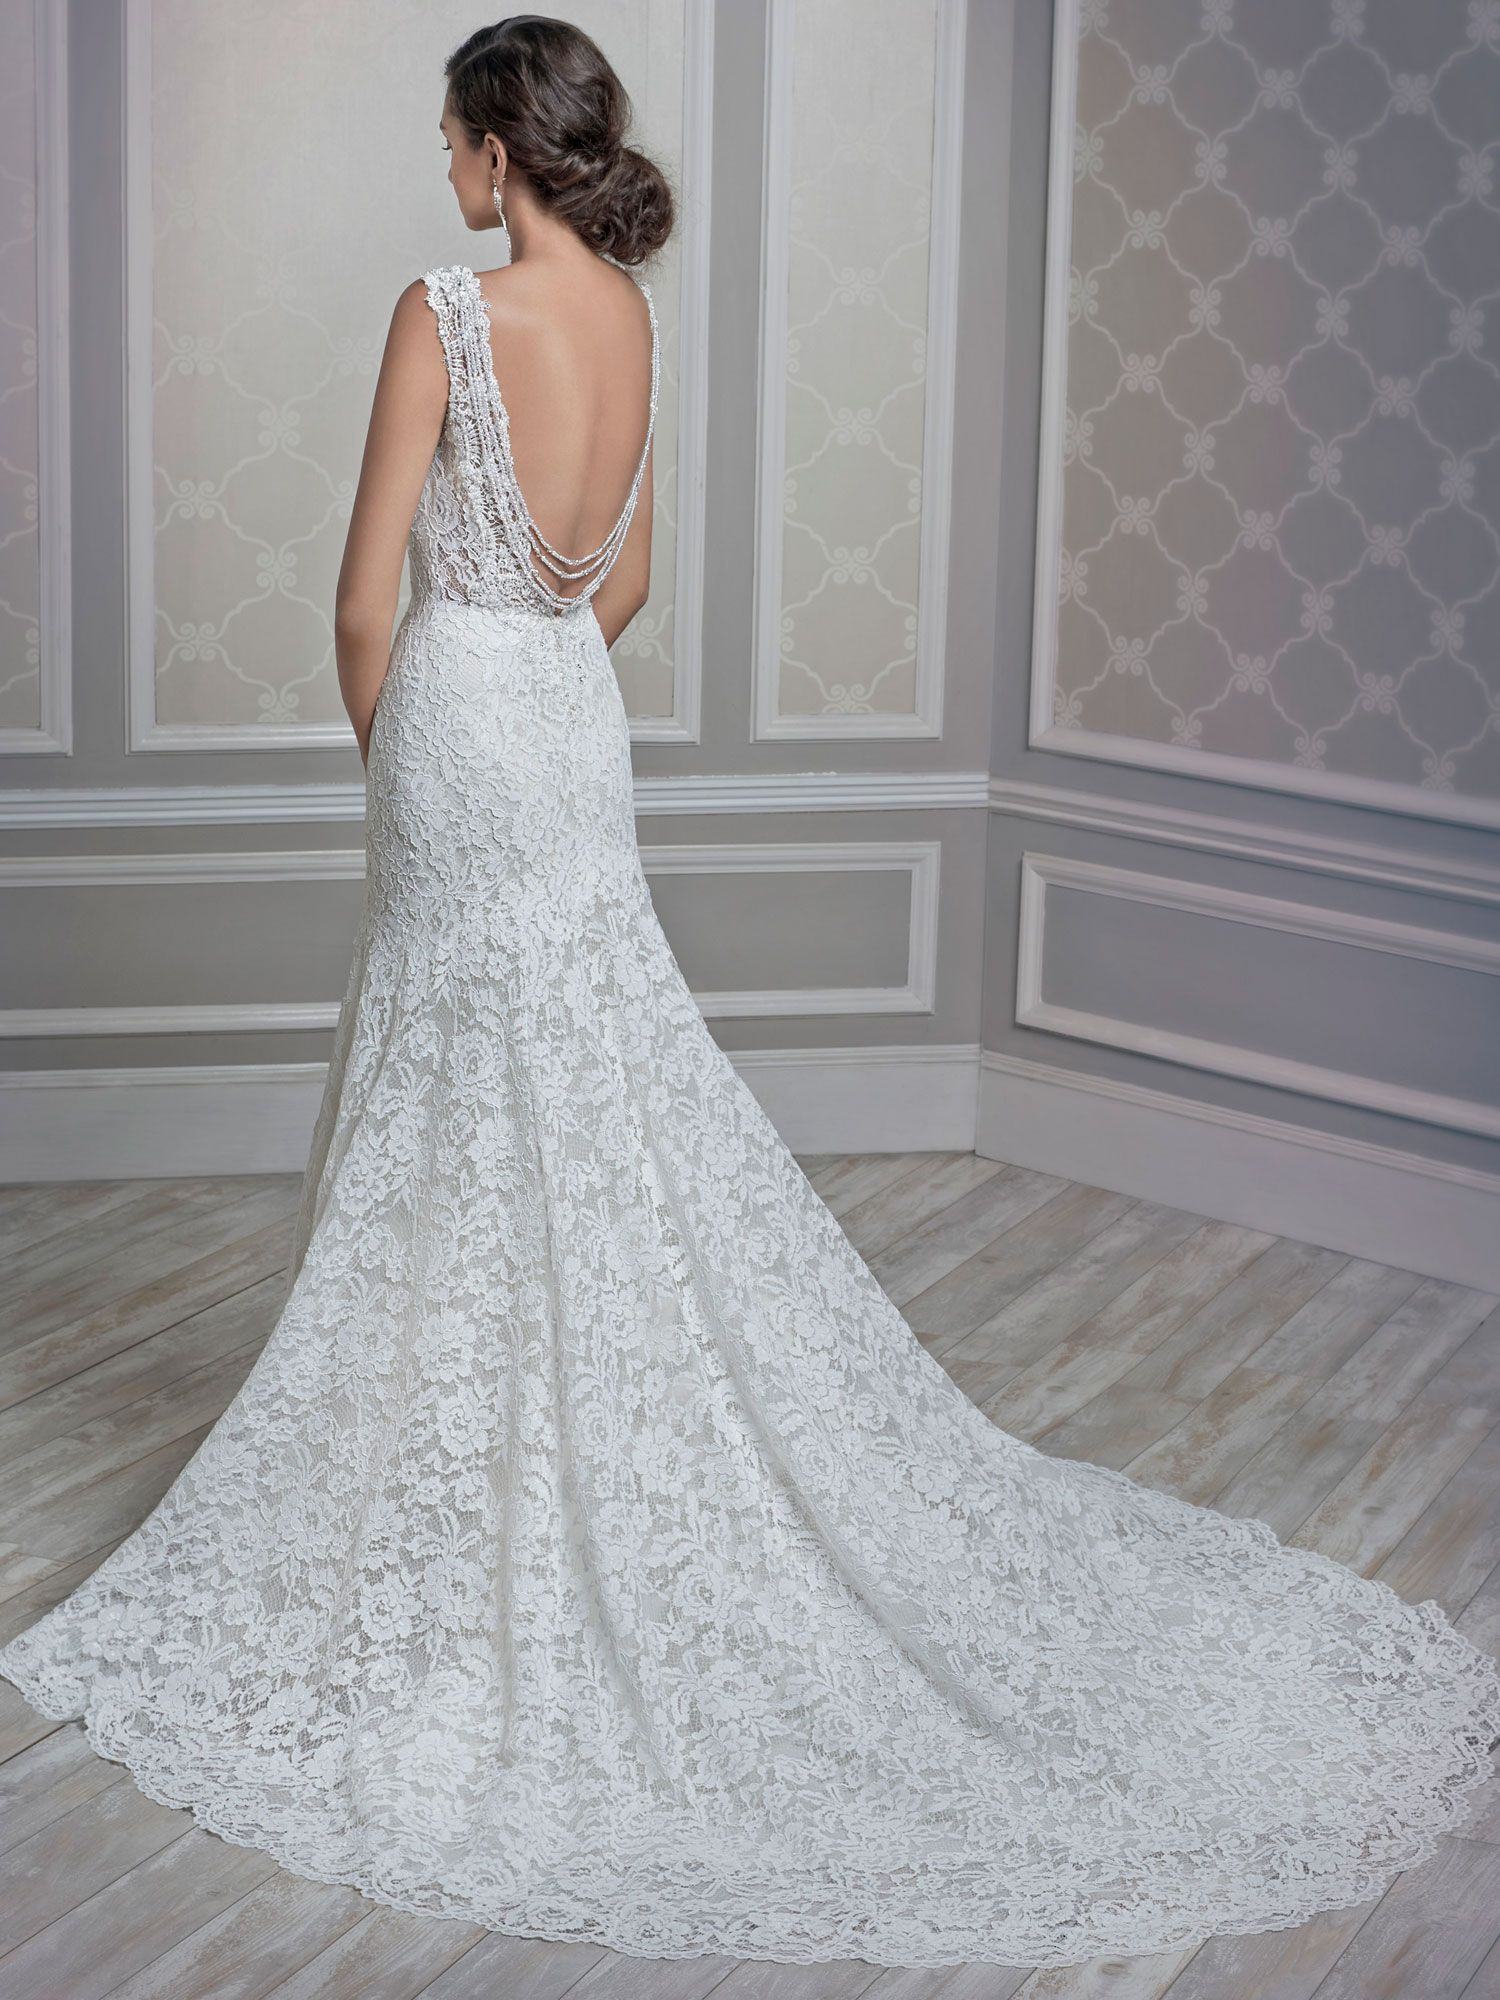 Style * 1600 * » Bridal Gowns, Wedding Dresses » Kenneth Winston ...